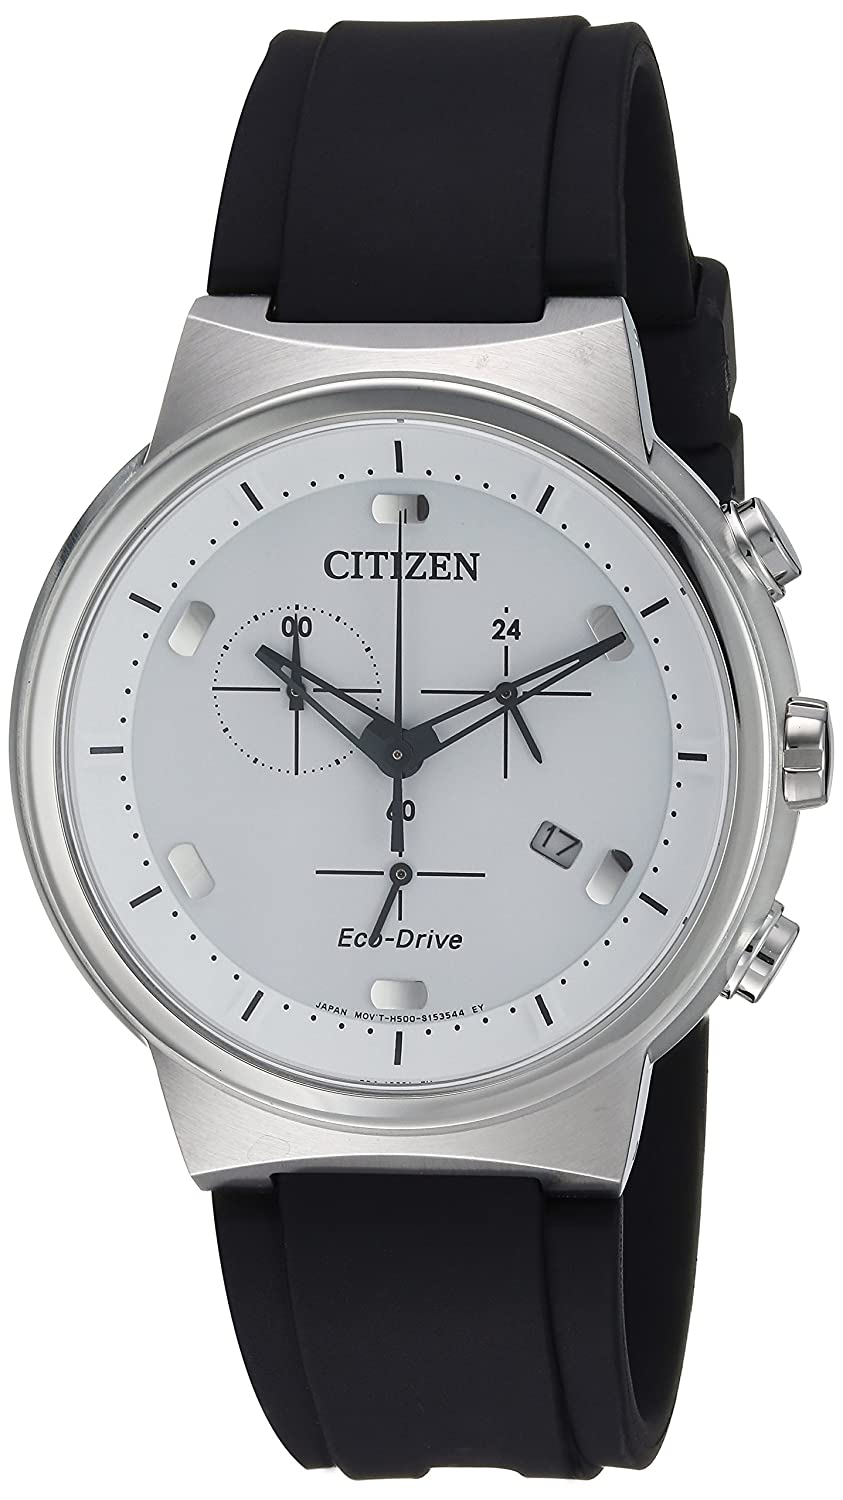 Citizen Men s Eco-Drive Stainless Steel Japanese-Quartz Watch with Polyurethane Strap, Black, 21.5 Model AT2400-05A